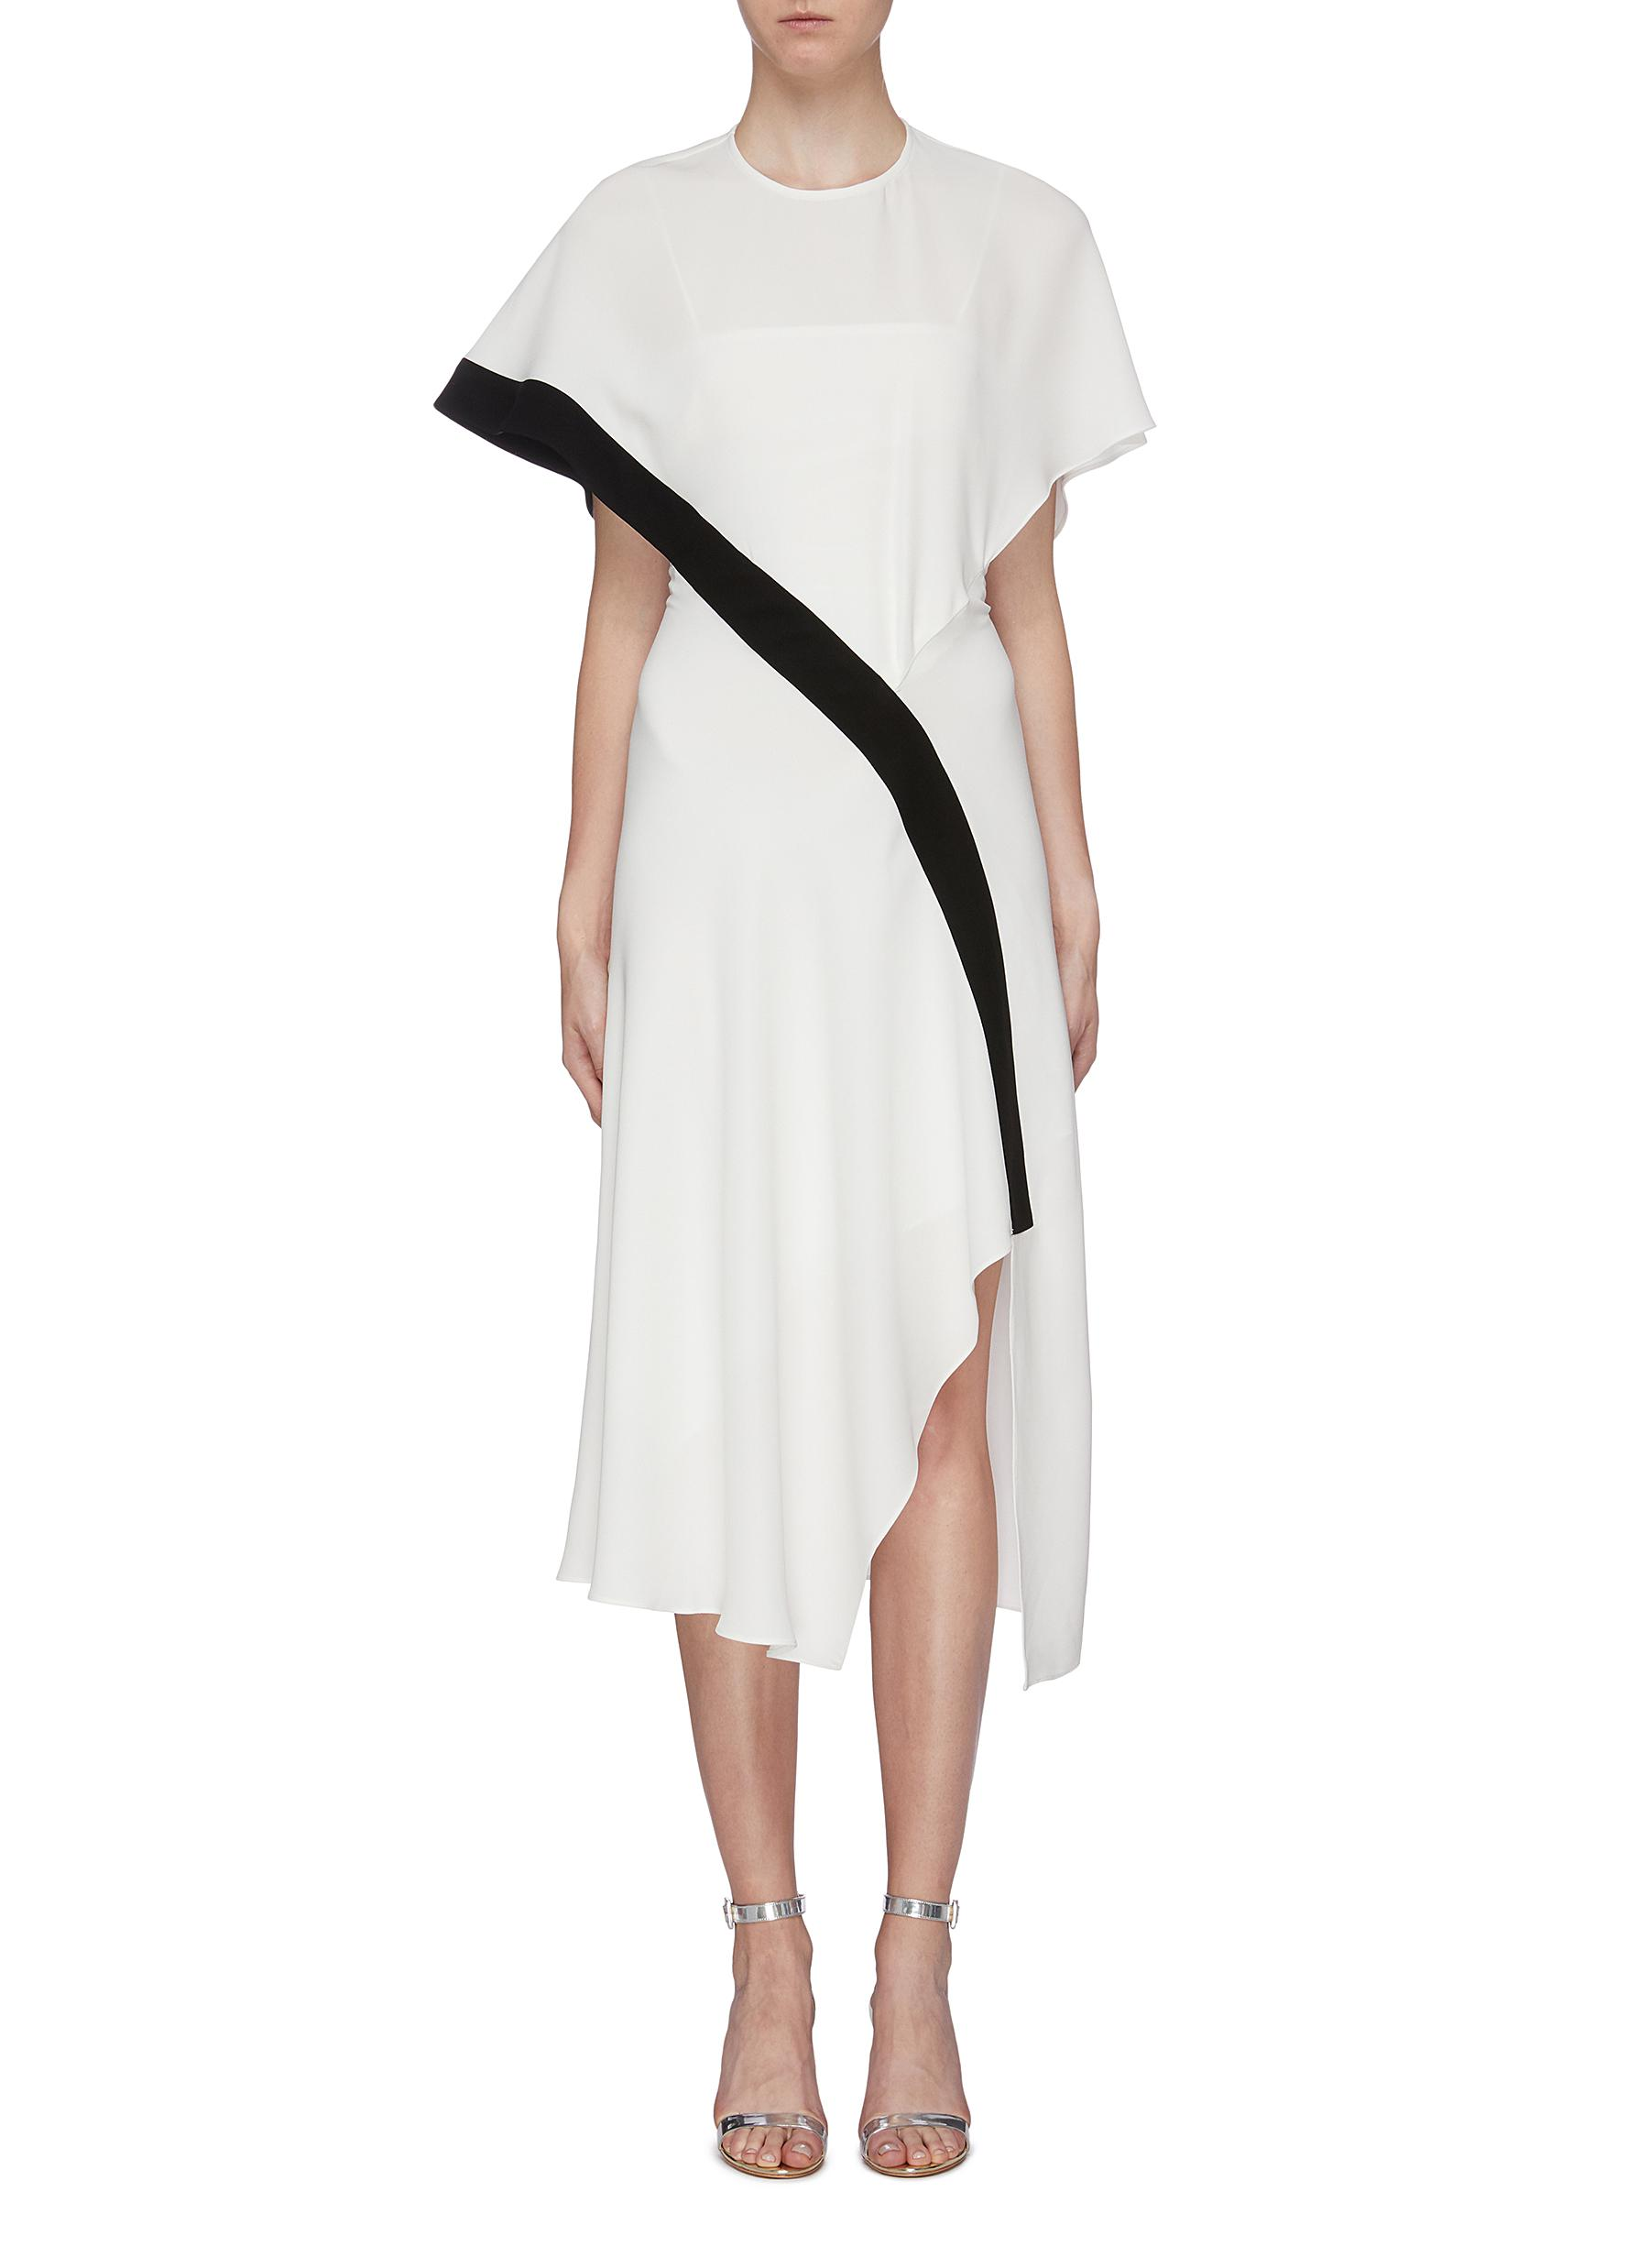 Lauren cape back overlay contrast stripe crepe dress by Bianca Spender